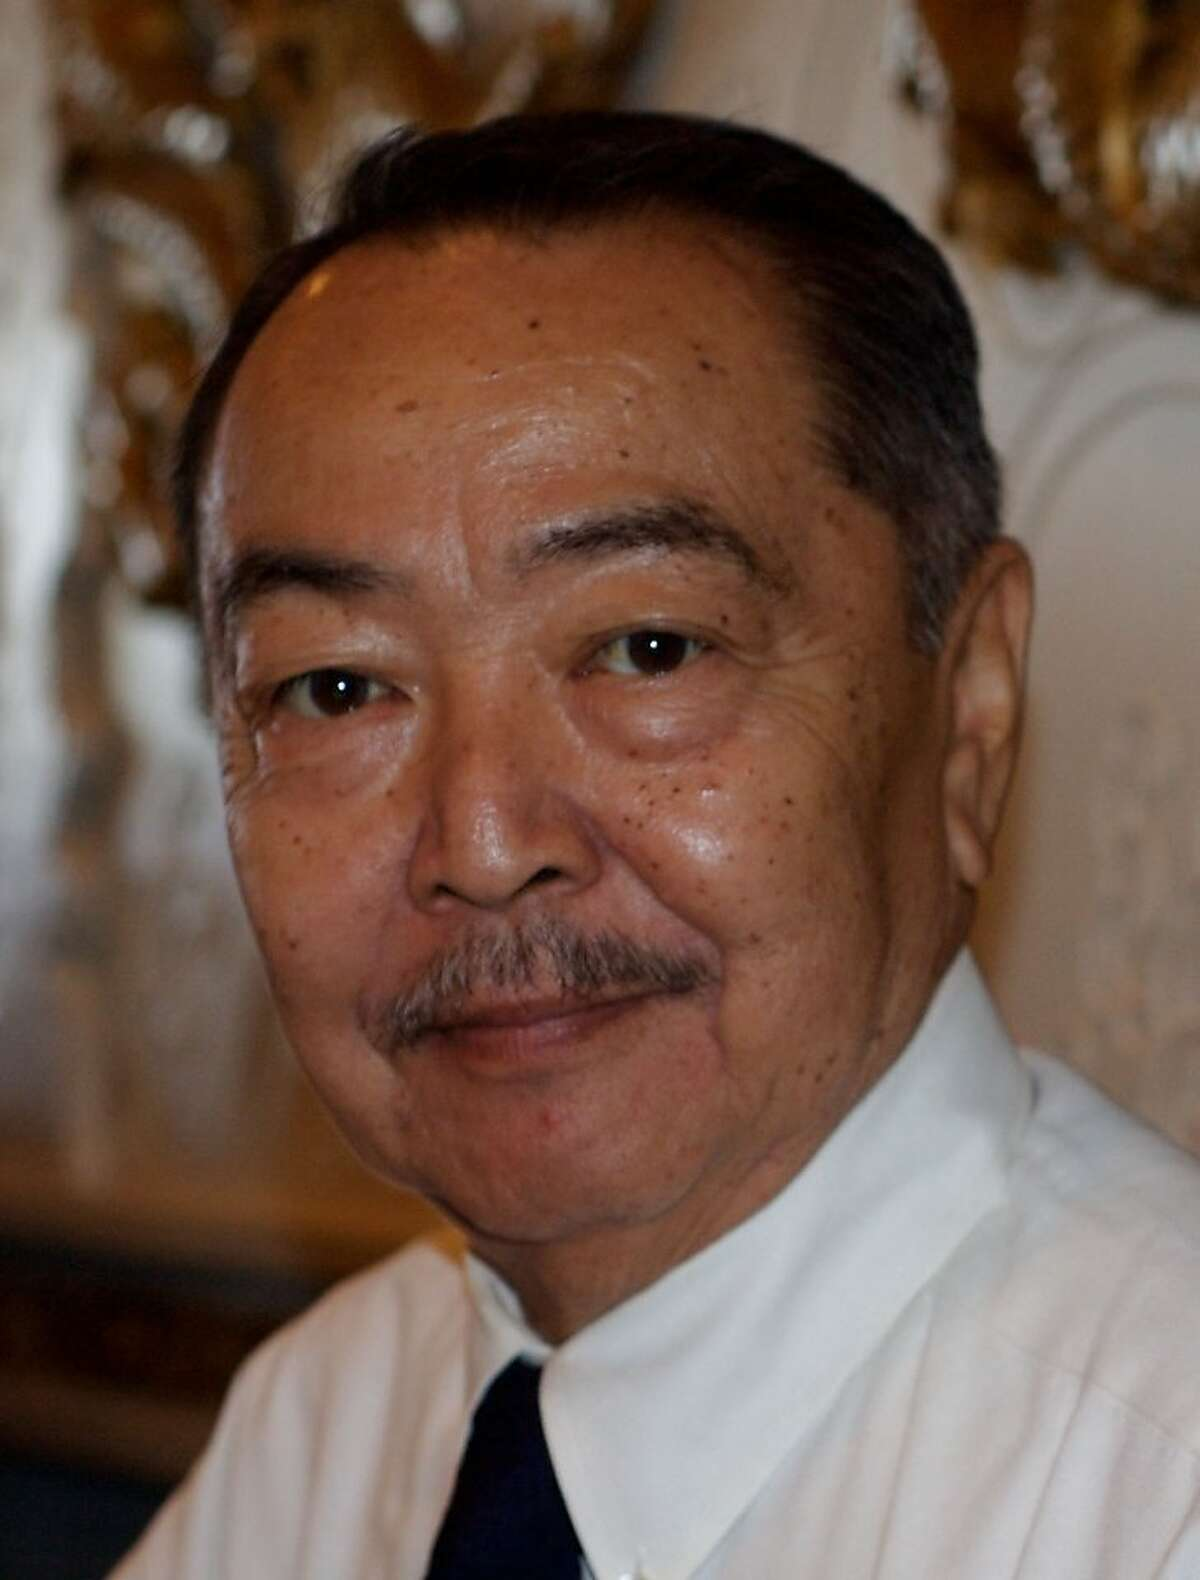 Richard Aoki was a member of the Black Panther Party and a civil rights activist in the 1960s. He died in 2009.